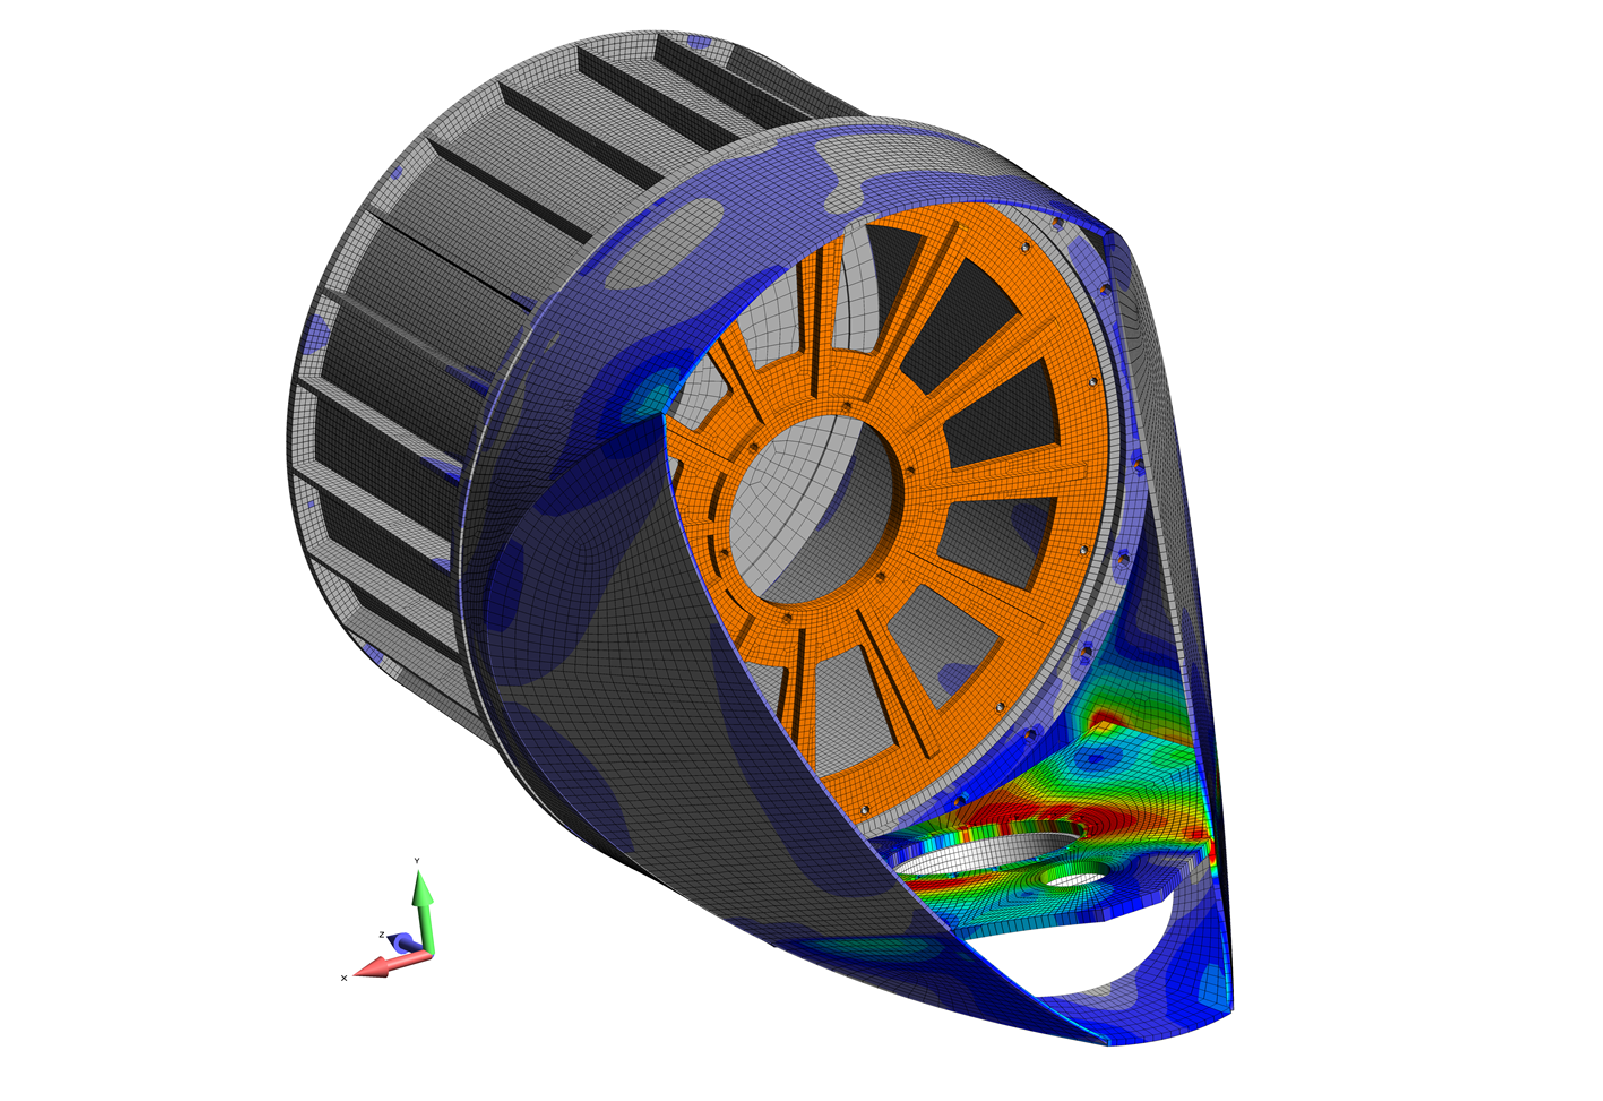 Figure 15: Stress analysis of 50 kW wind turbine nacelle given tower and blade hub loading.